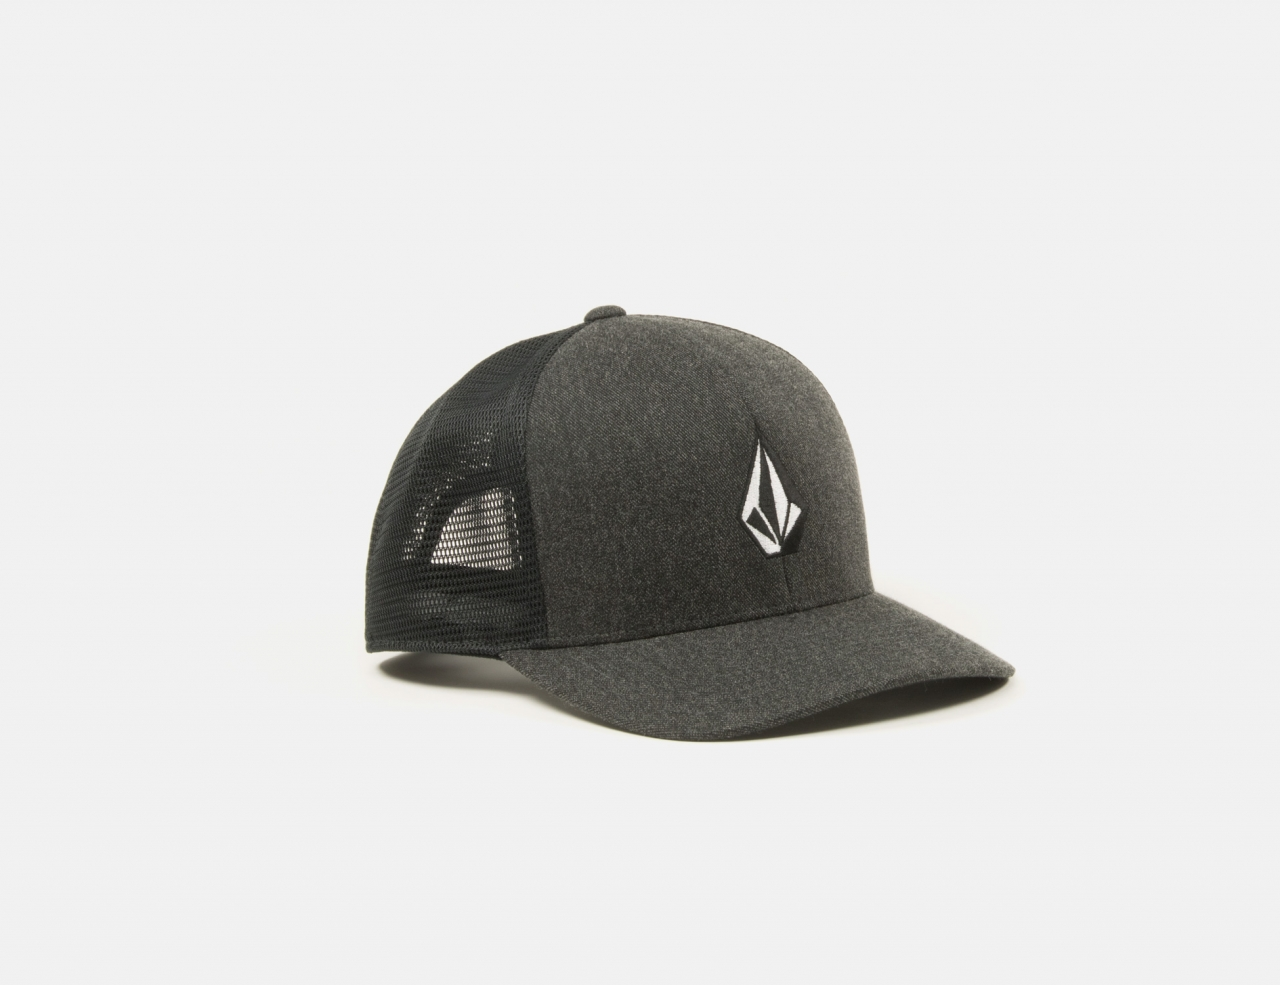 Volcom Full Stone Cheese 110 Trucker Cap - Charcoal Heather